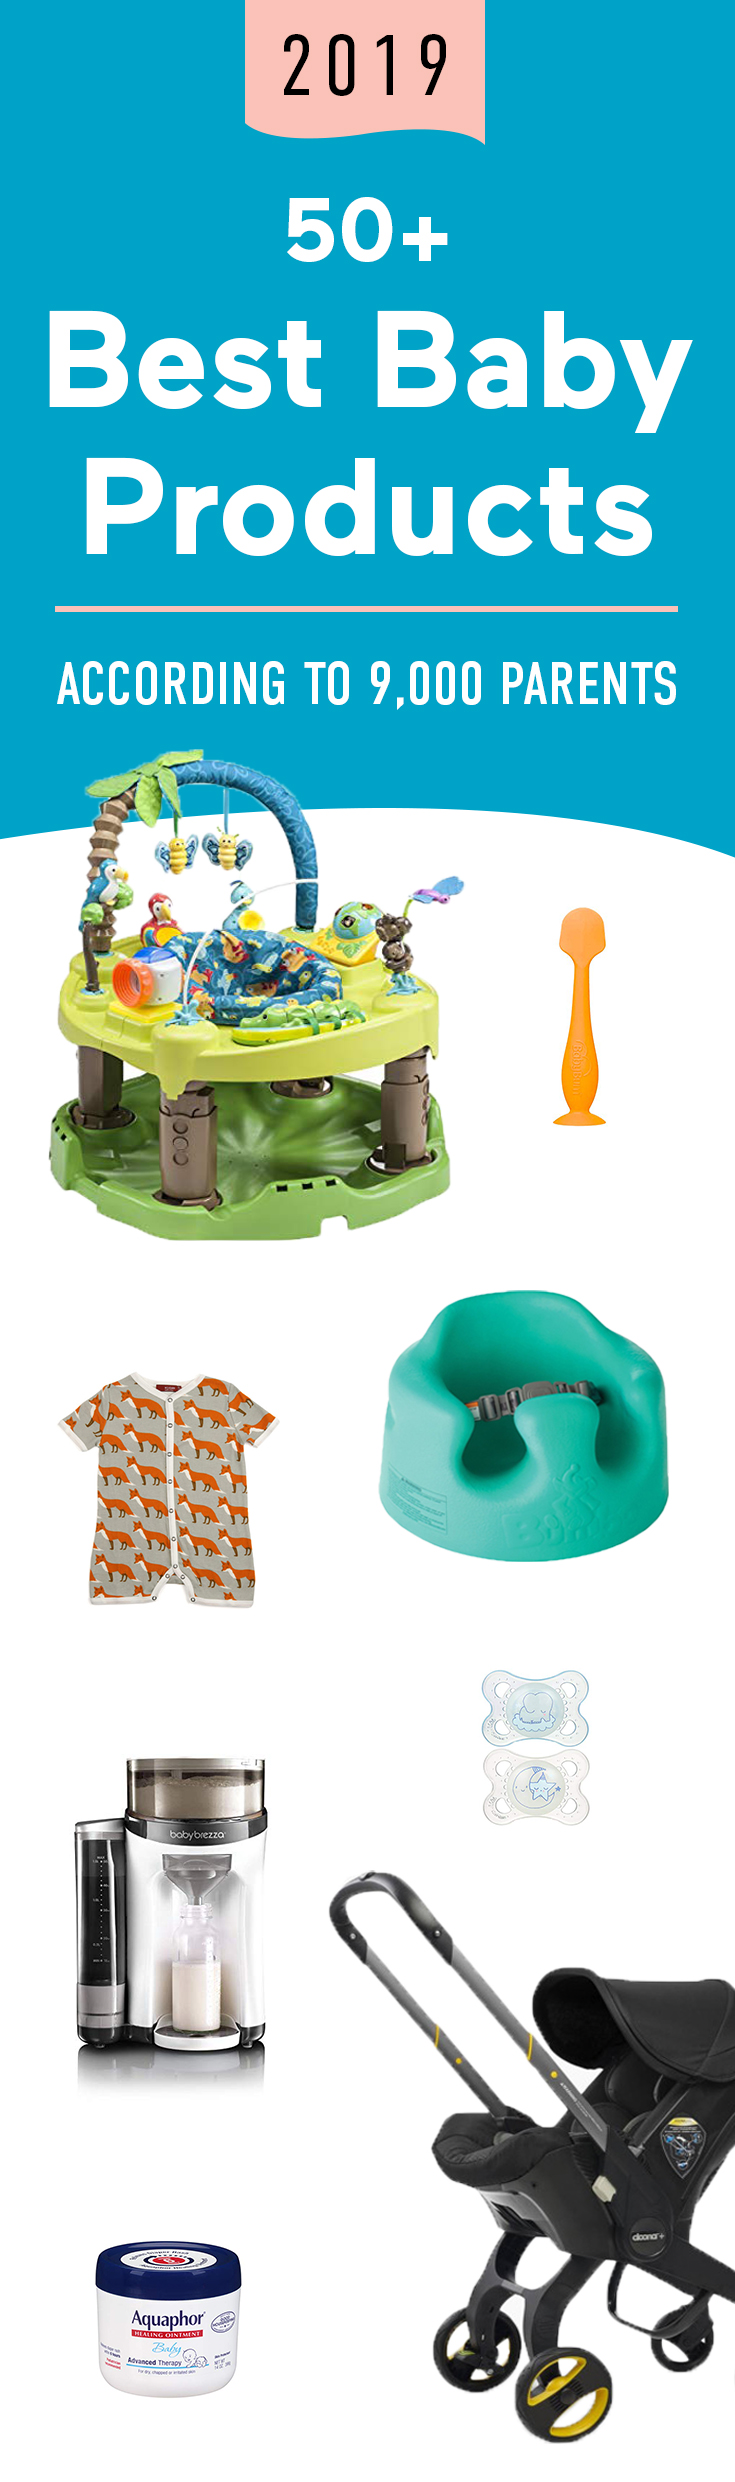 Babylist families share their favorite, can't-live-without products and gear for baby for 2019